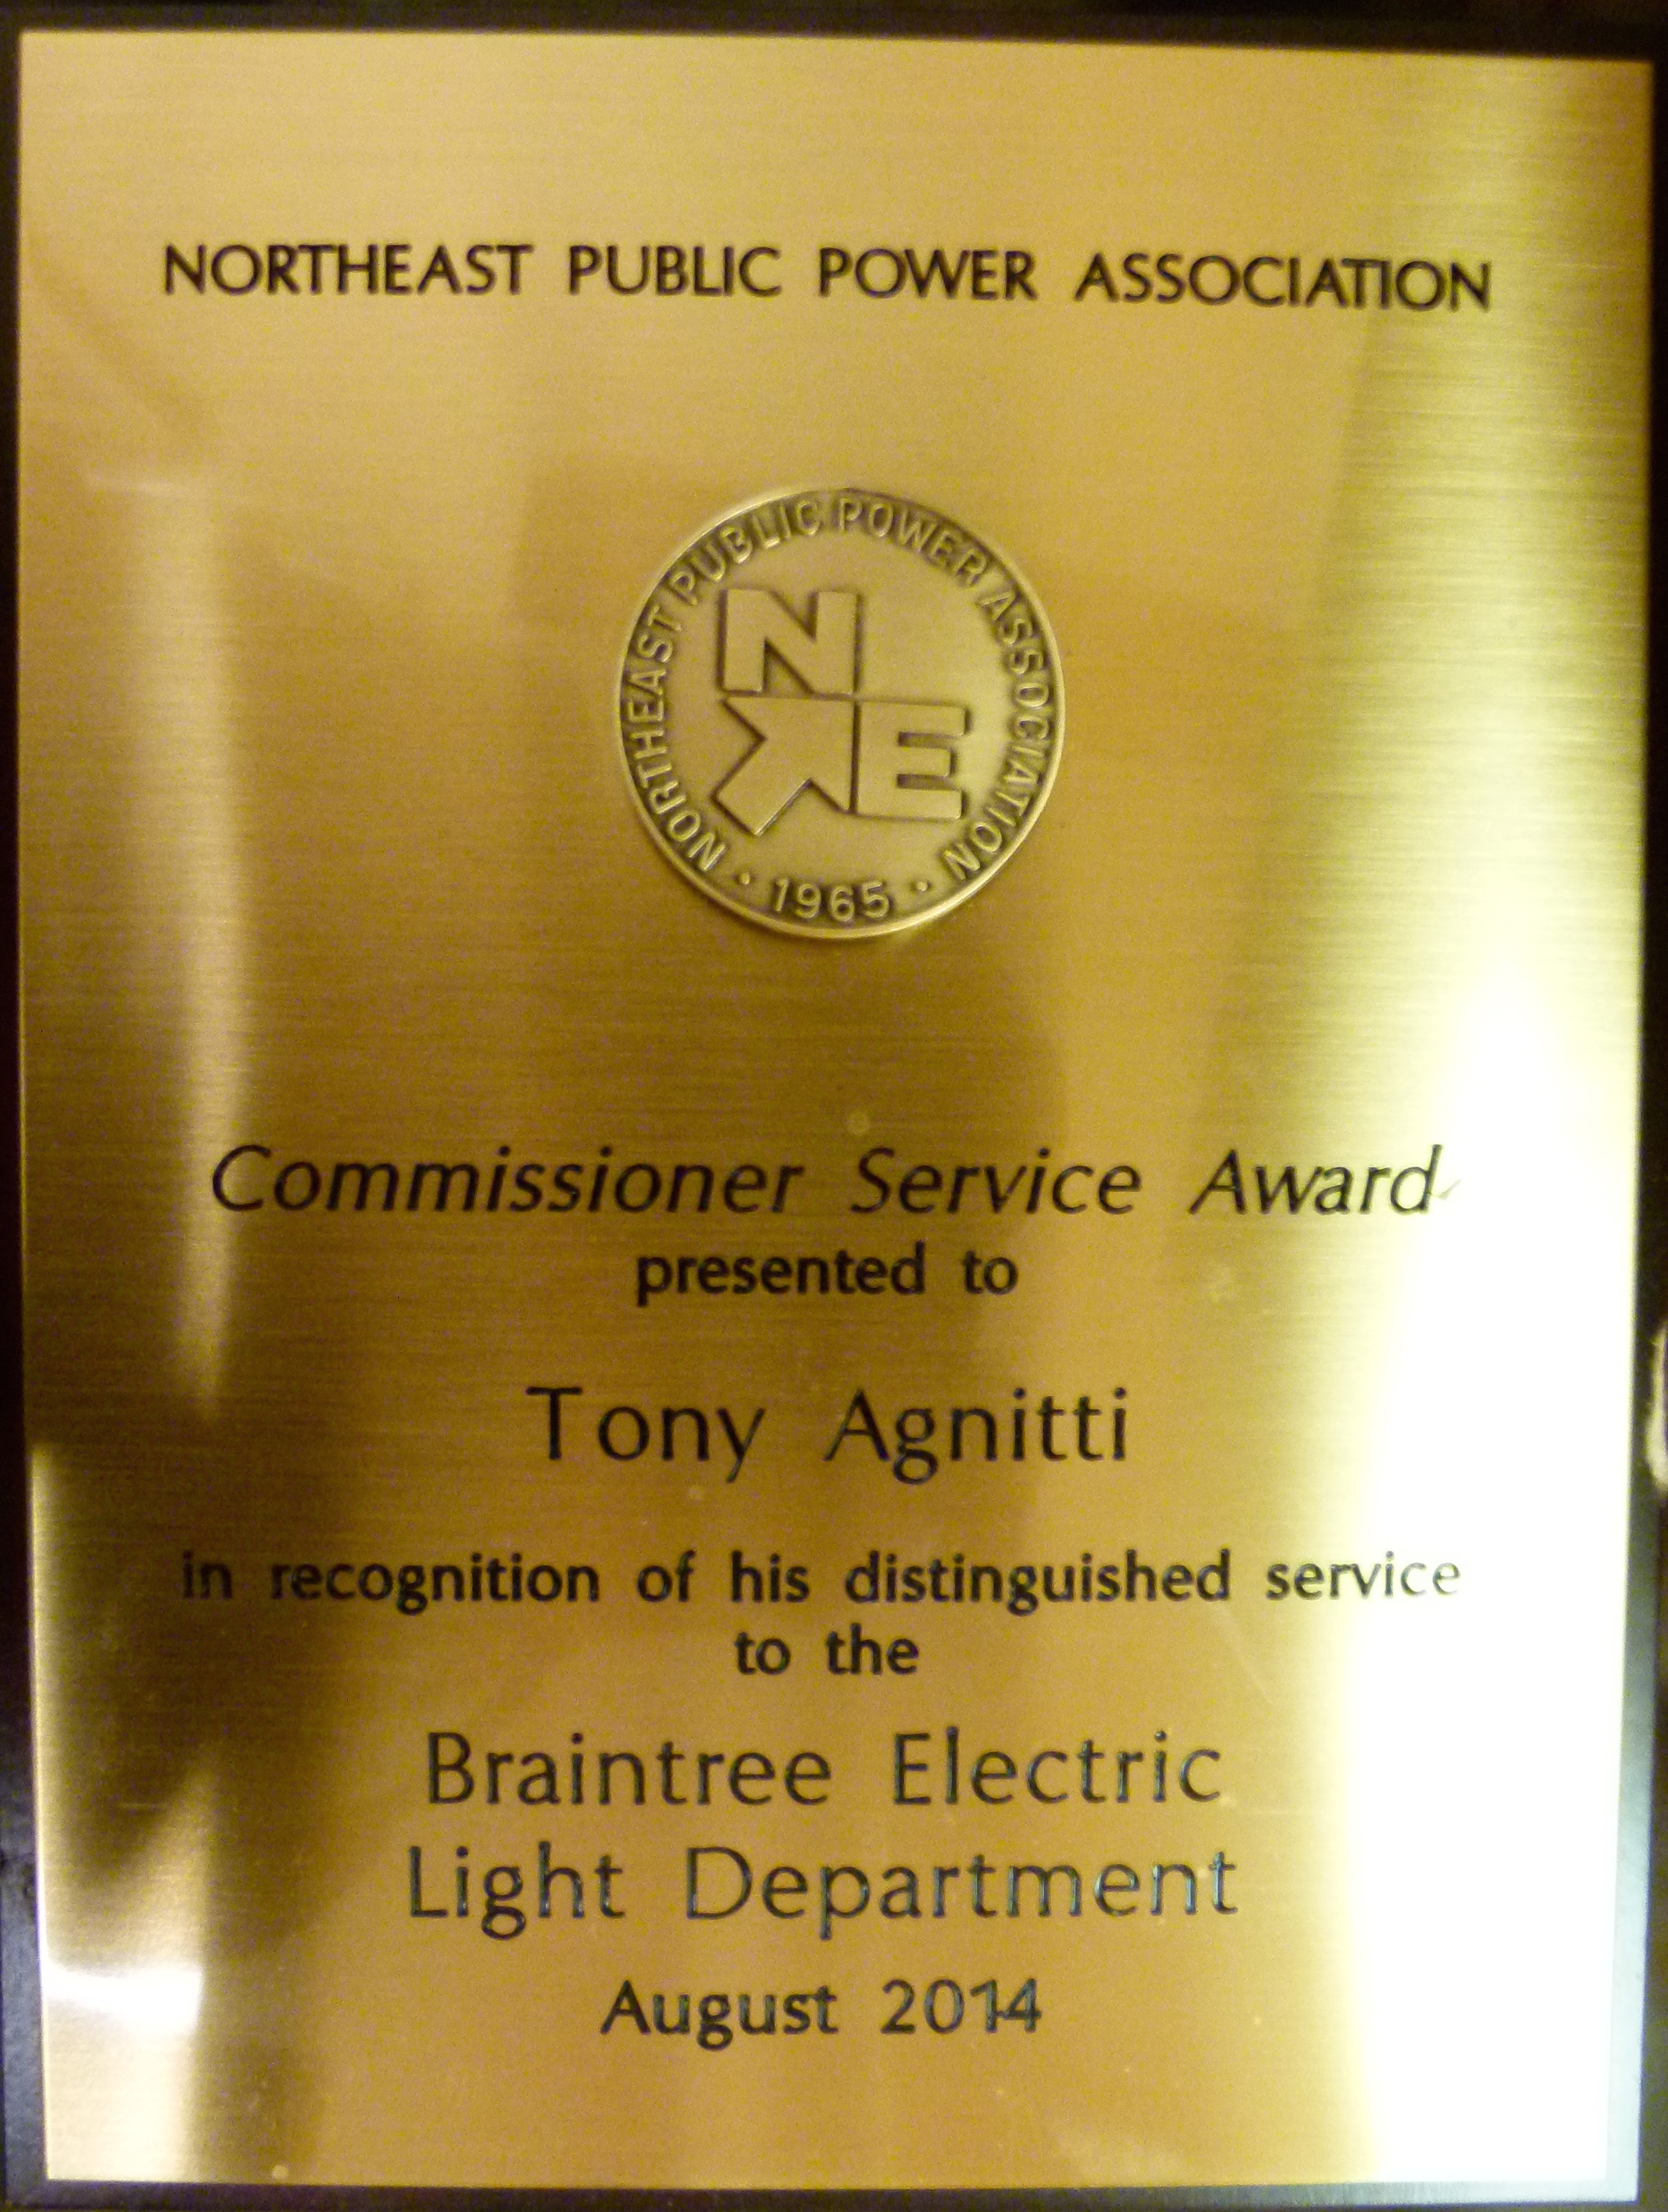 Anthony-Agnitti-Notheast-Public-Power-association-distinguished-service-braintree-electric-light-department